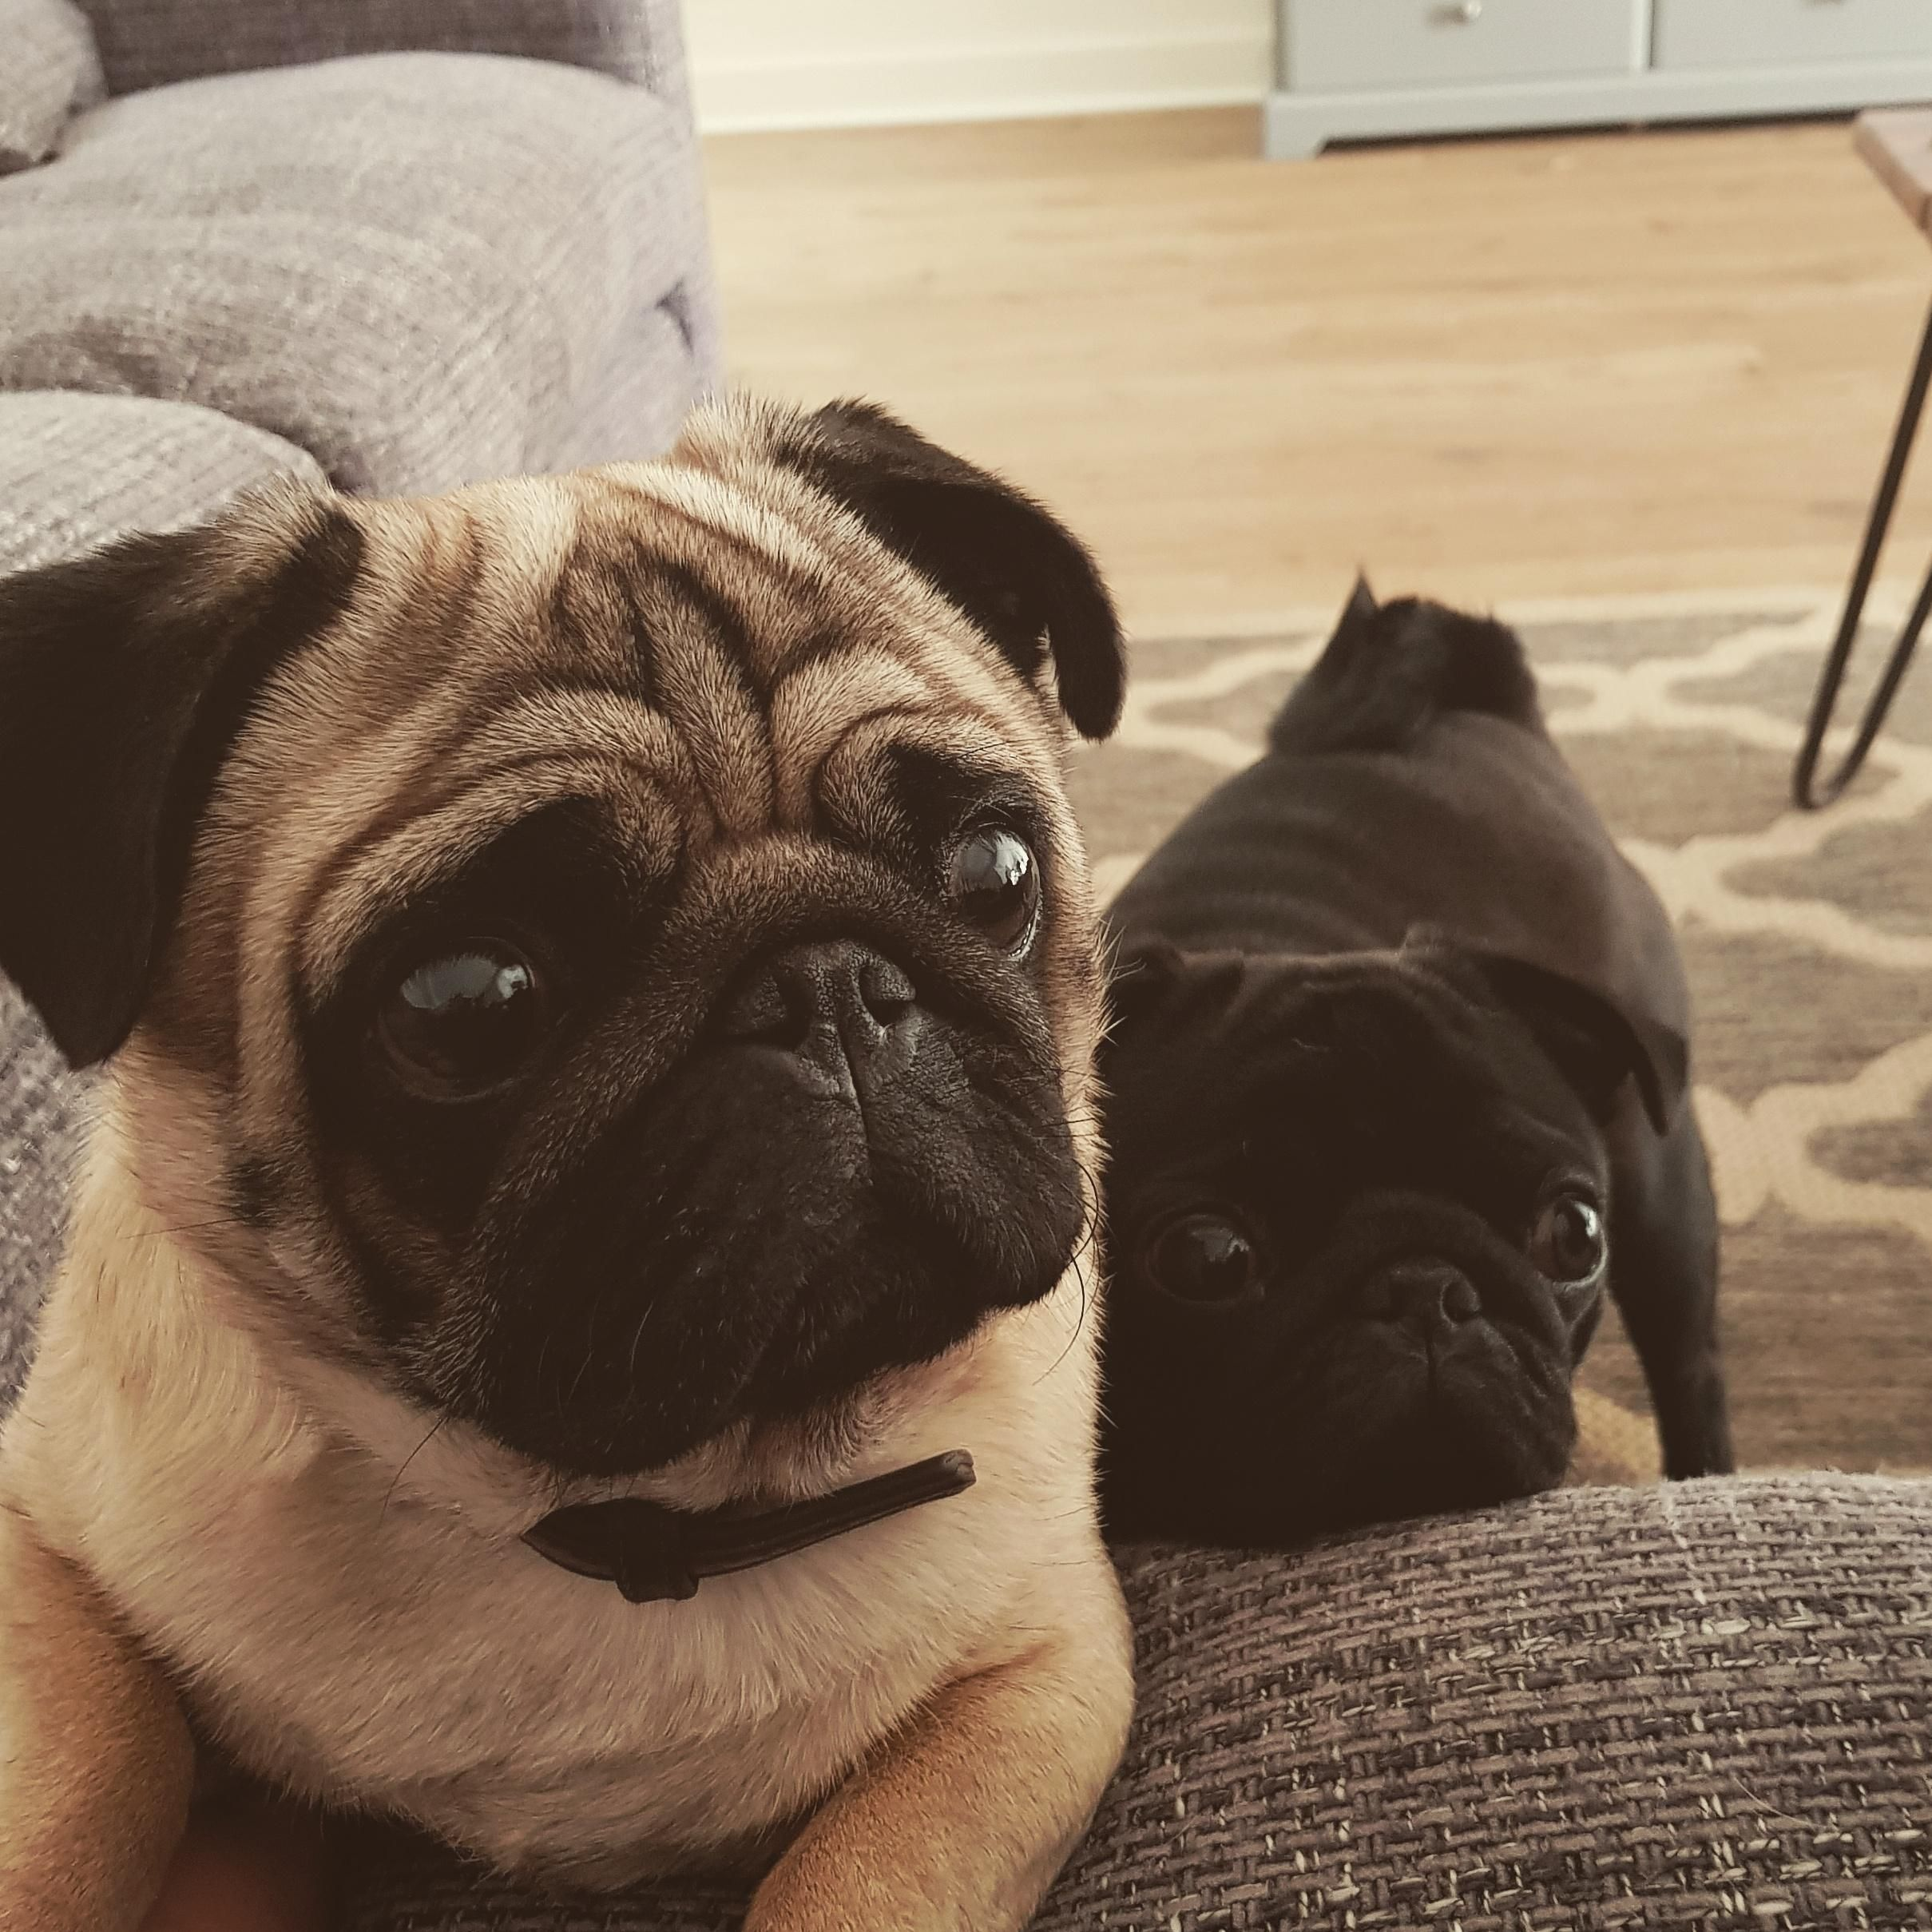 Pin By Flori Cobb On Pugs Cute Pug Puppies Baby Pug Dog Cute Dogs